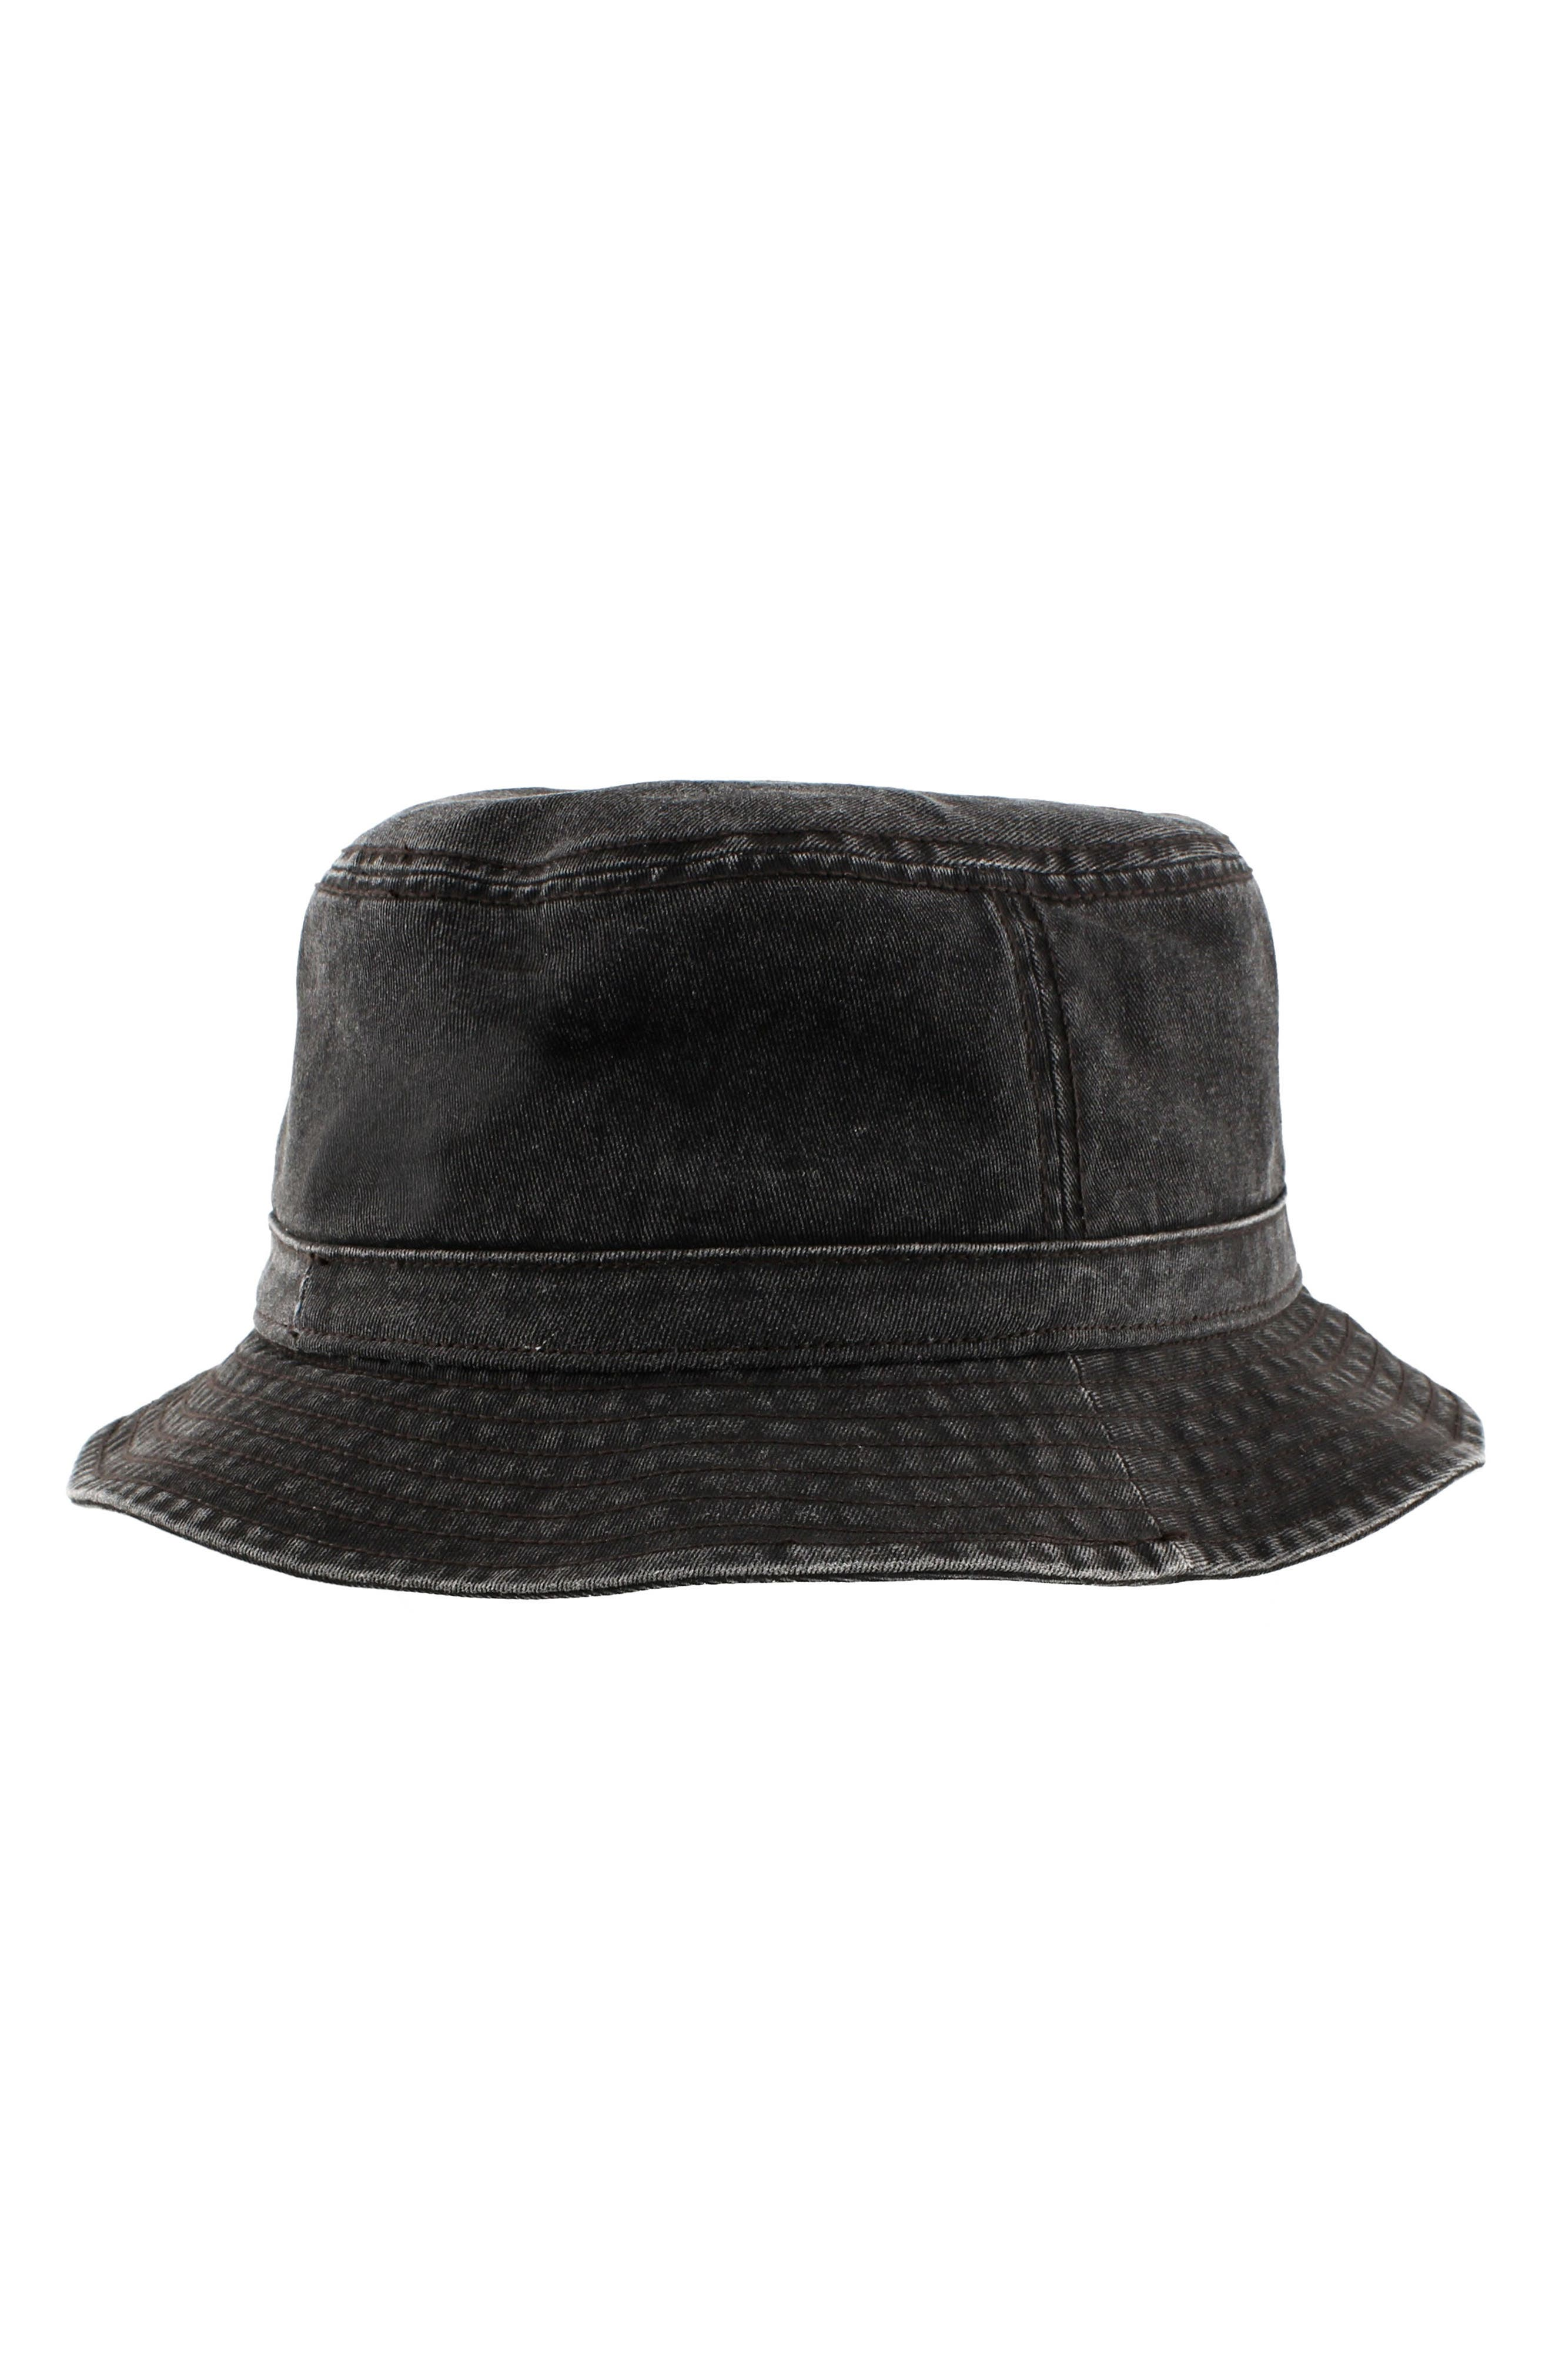 Washed Bucket Hat,                             Alternate thumbnail 2, color,                             001